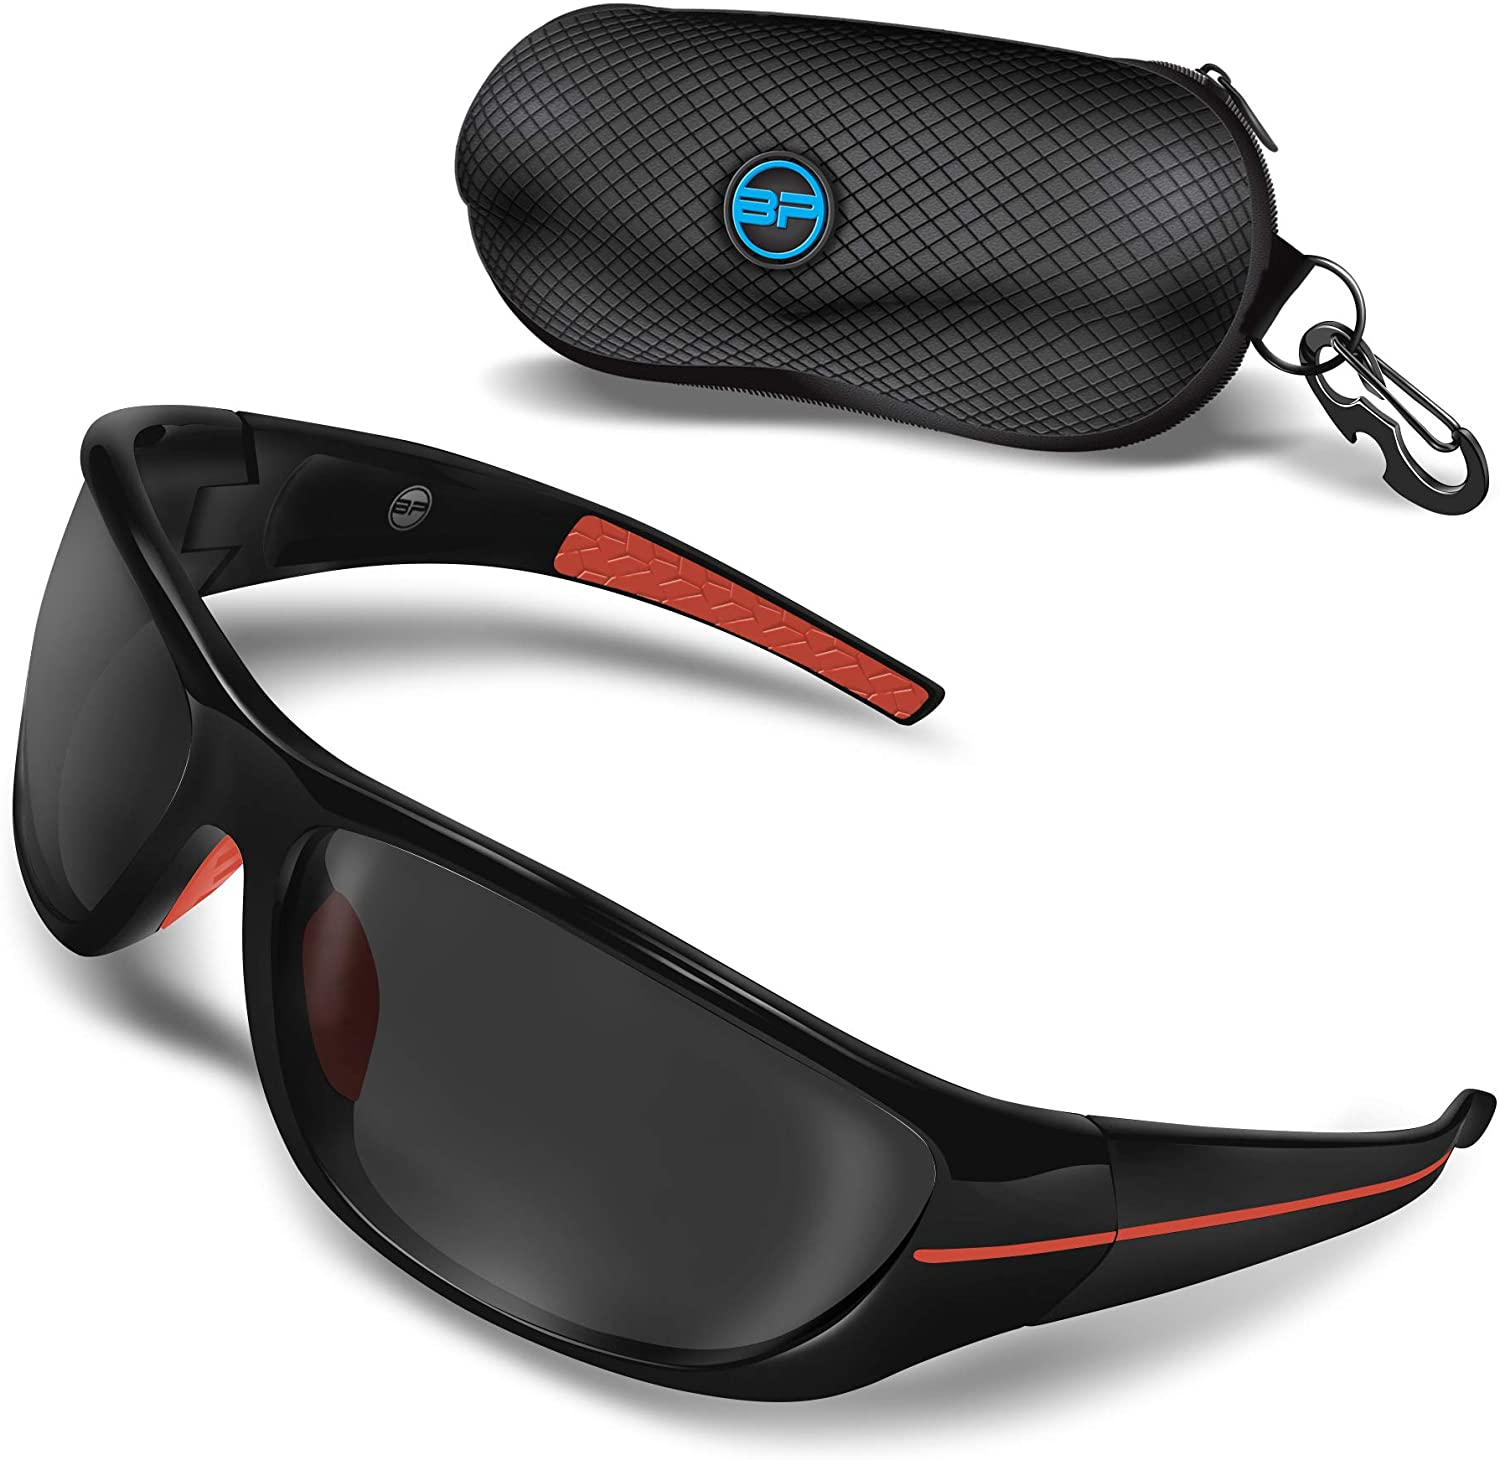 BLUPOND Polarized Driving Sunglasses for Men/Women - TAC HD Lens Clear Vision for Motorcycle Riding - CHOPPER